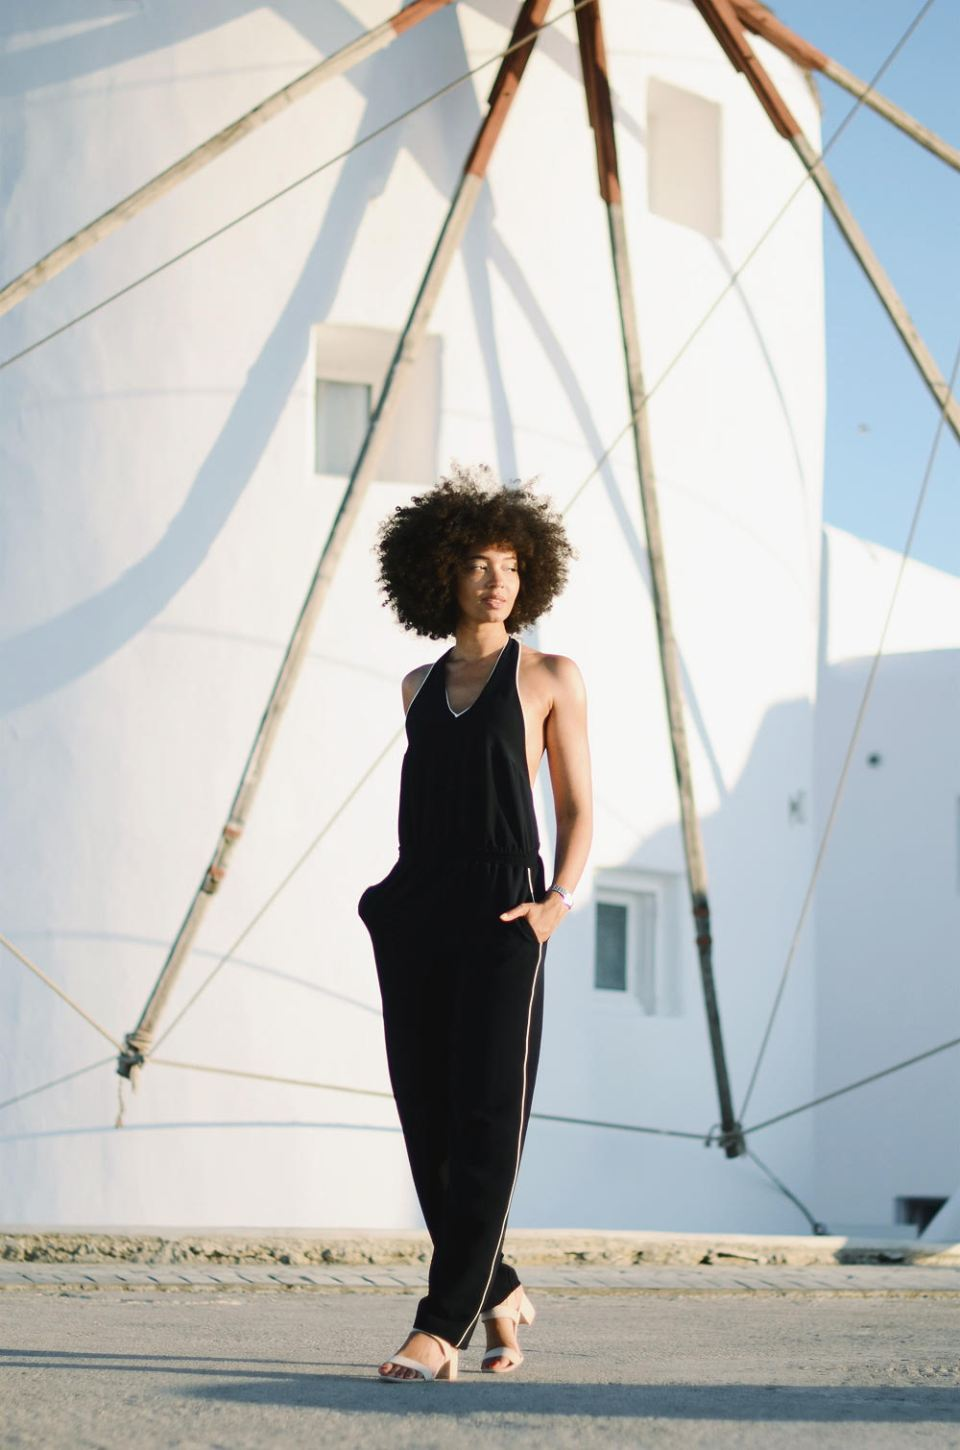 mercredie-blog-mode-geneve-suisse-switzerland-geneva-blogger-swiss-h&m-jumpsuit-combinaison-afro-natural-hair-cheveux-frises-naturels-mykonos-absolut-suites-moulin2